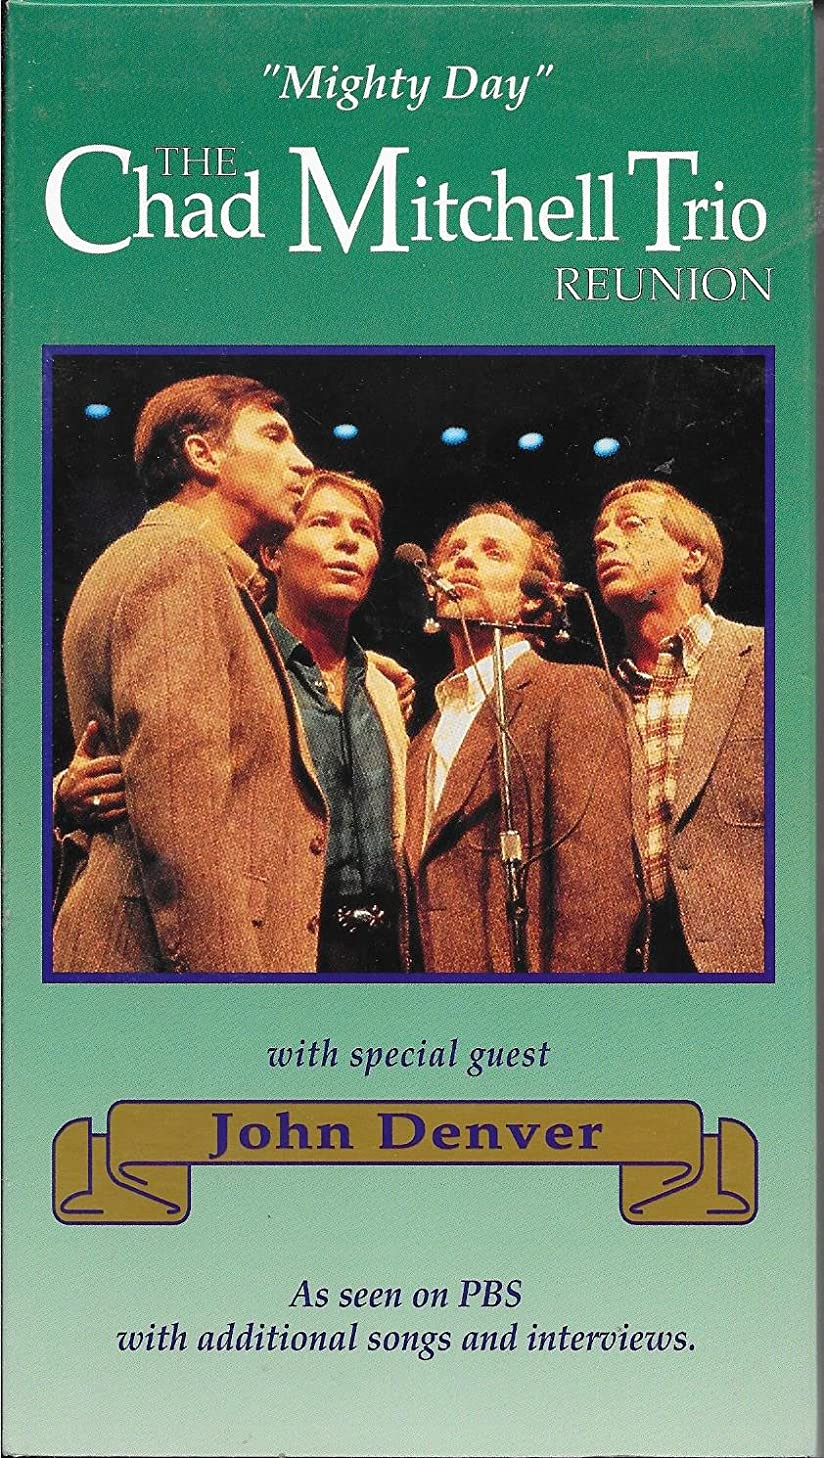 Mighty Day: The Chad Mitchell Trio Reunion with Special Guest John Denver VHS